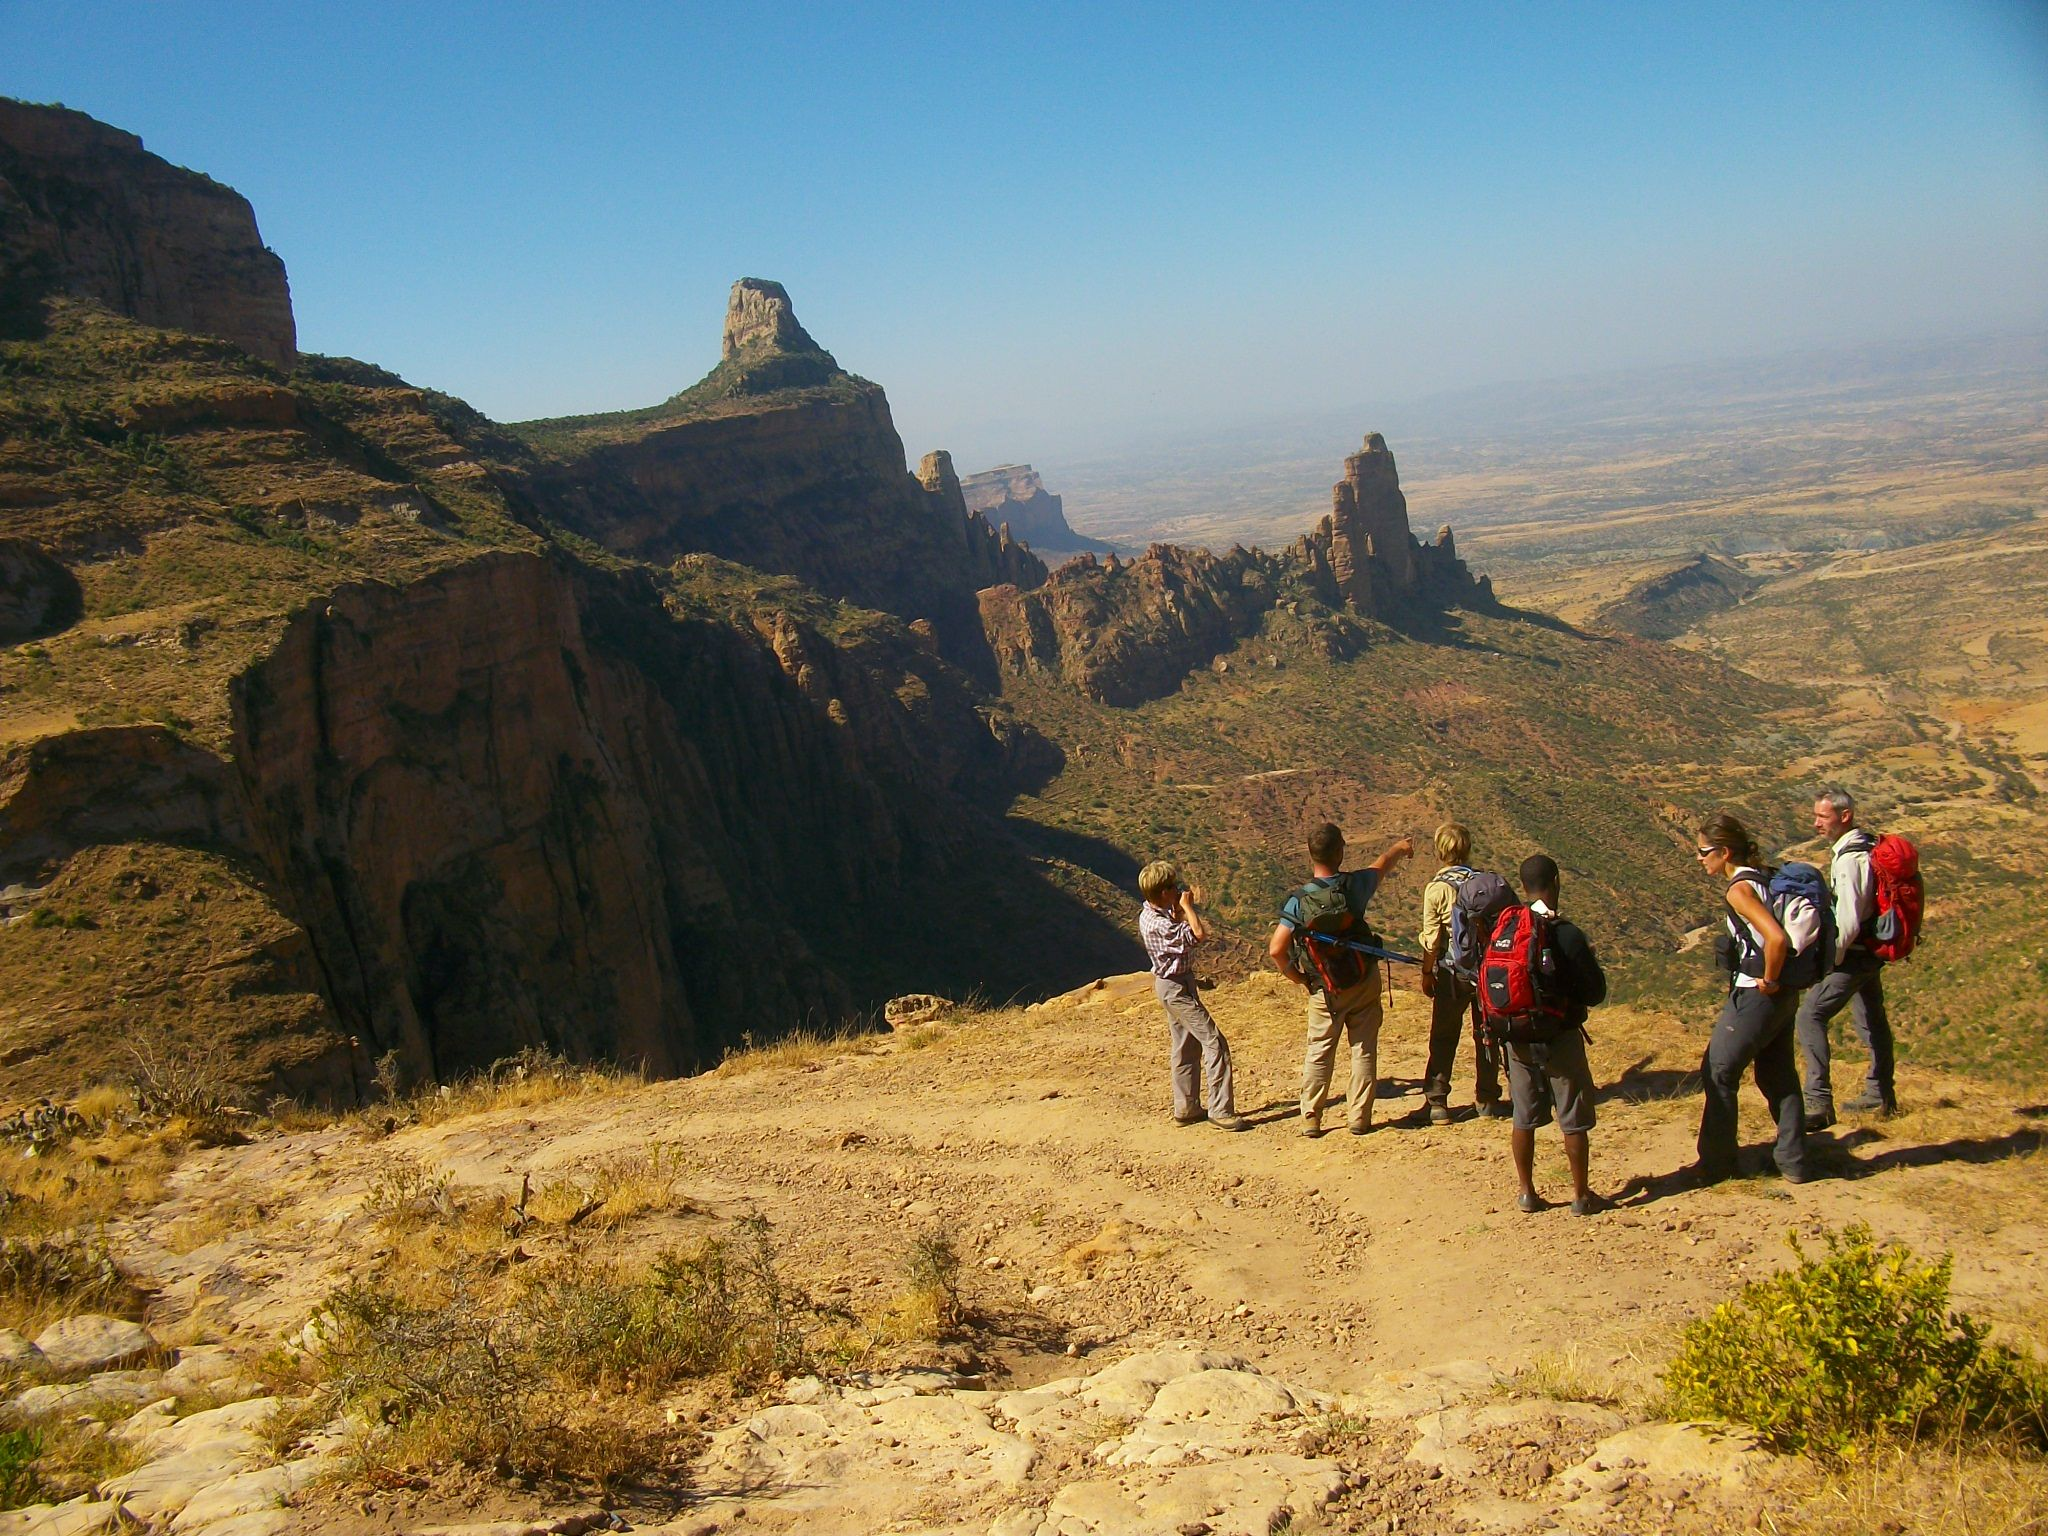 abyss land tour and travel groupe in gerealta trekking